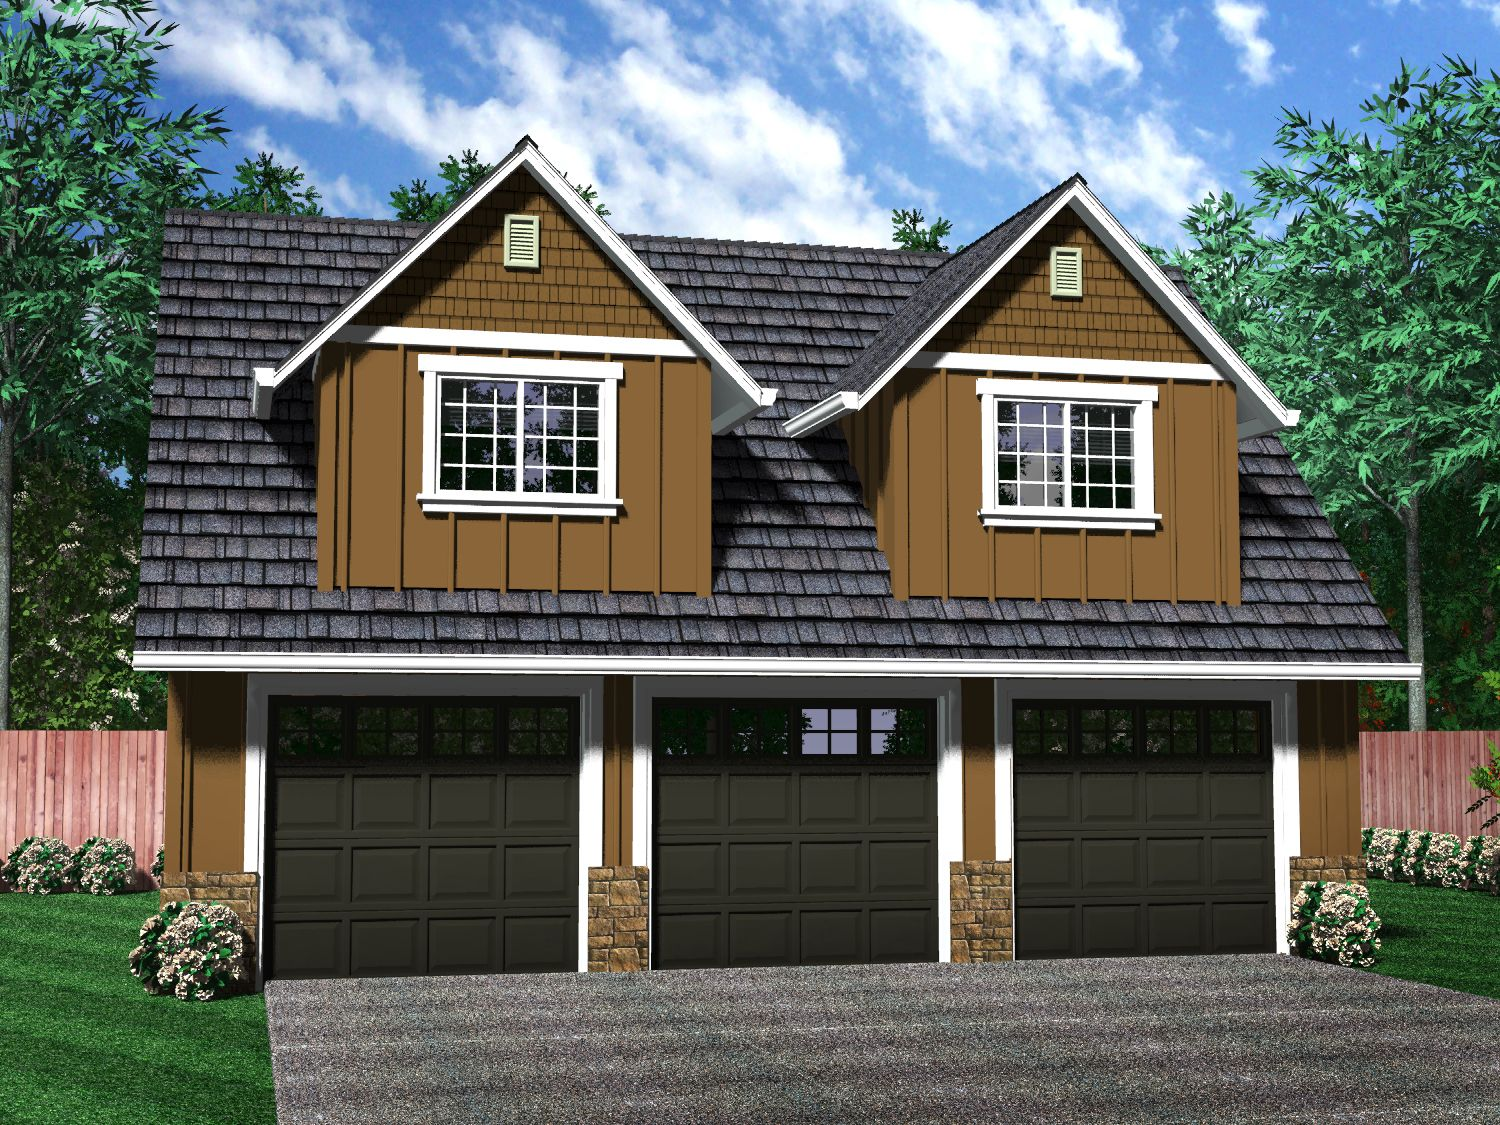 Garage And Apartment Kits 25 Awesome Detached Garage Inspirations For Your House Detached